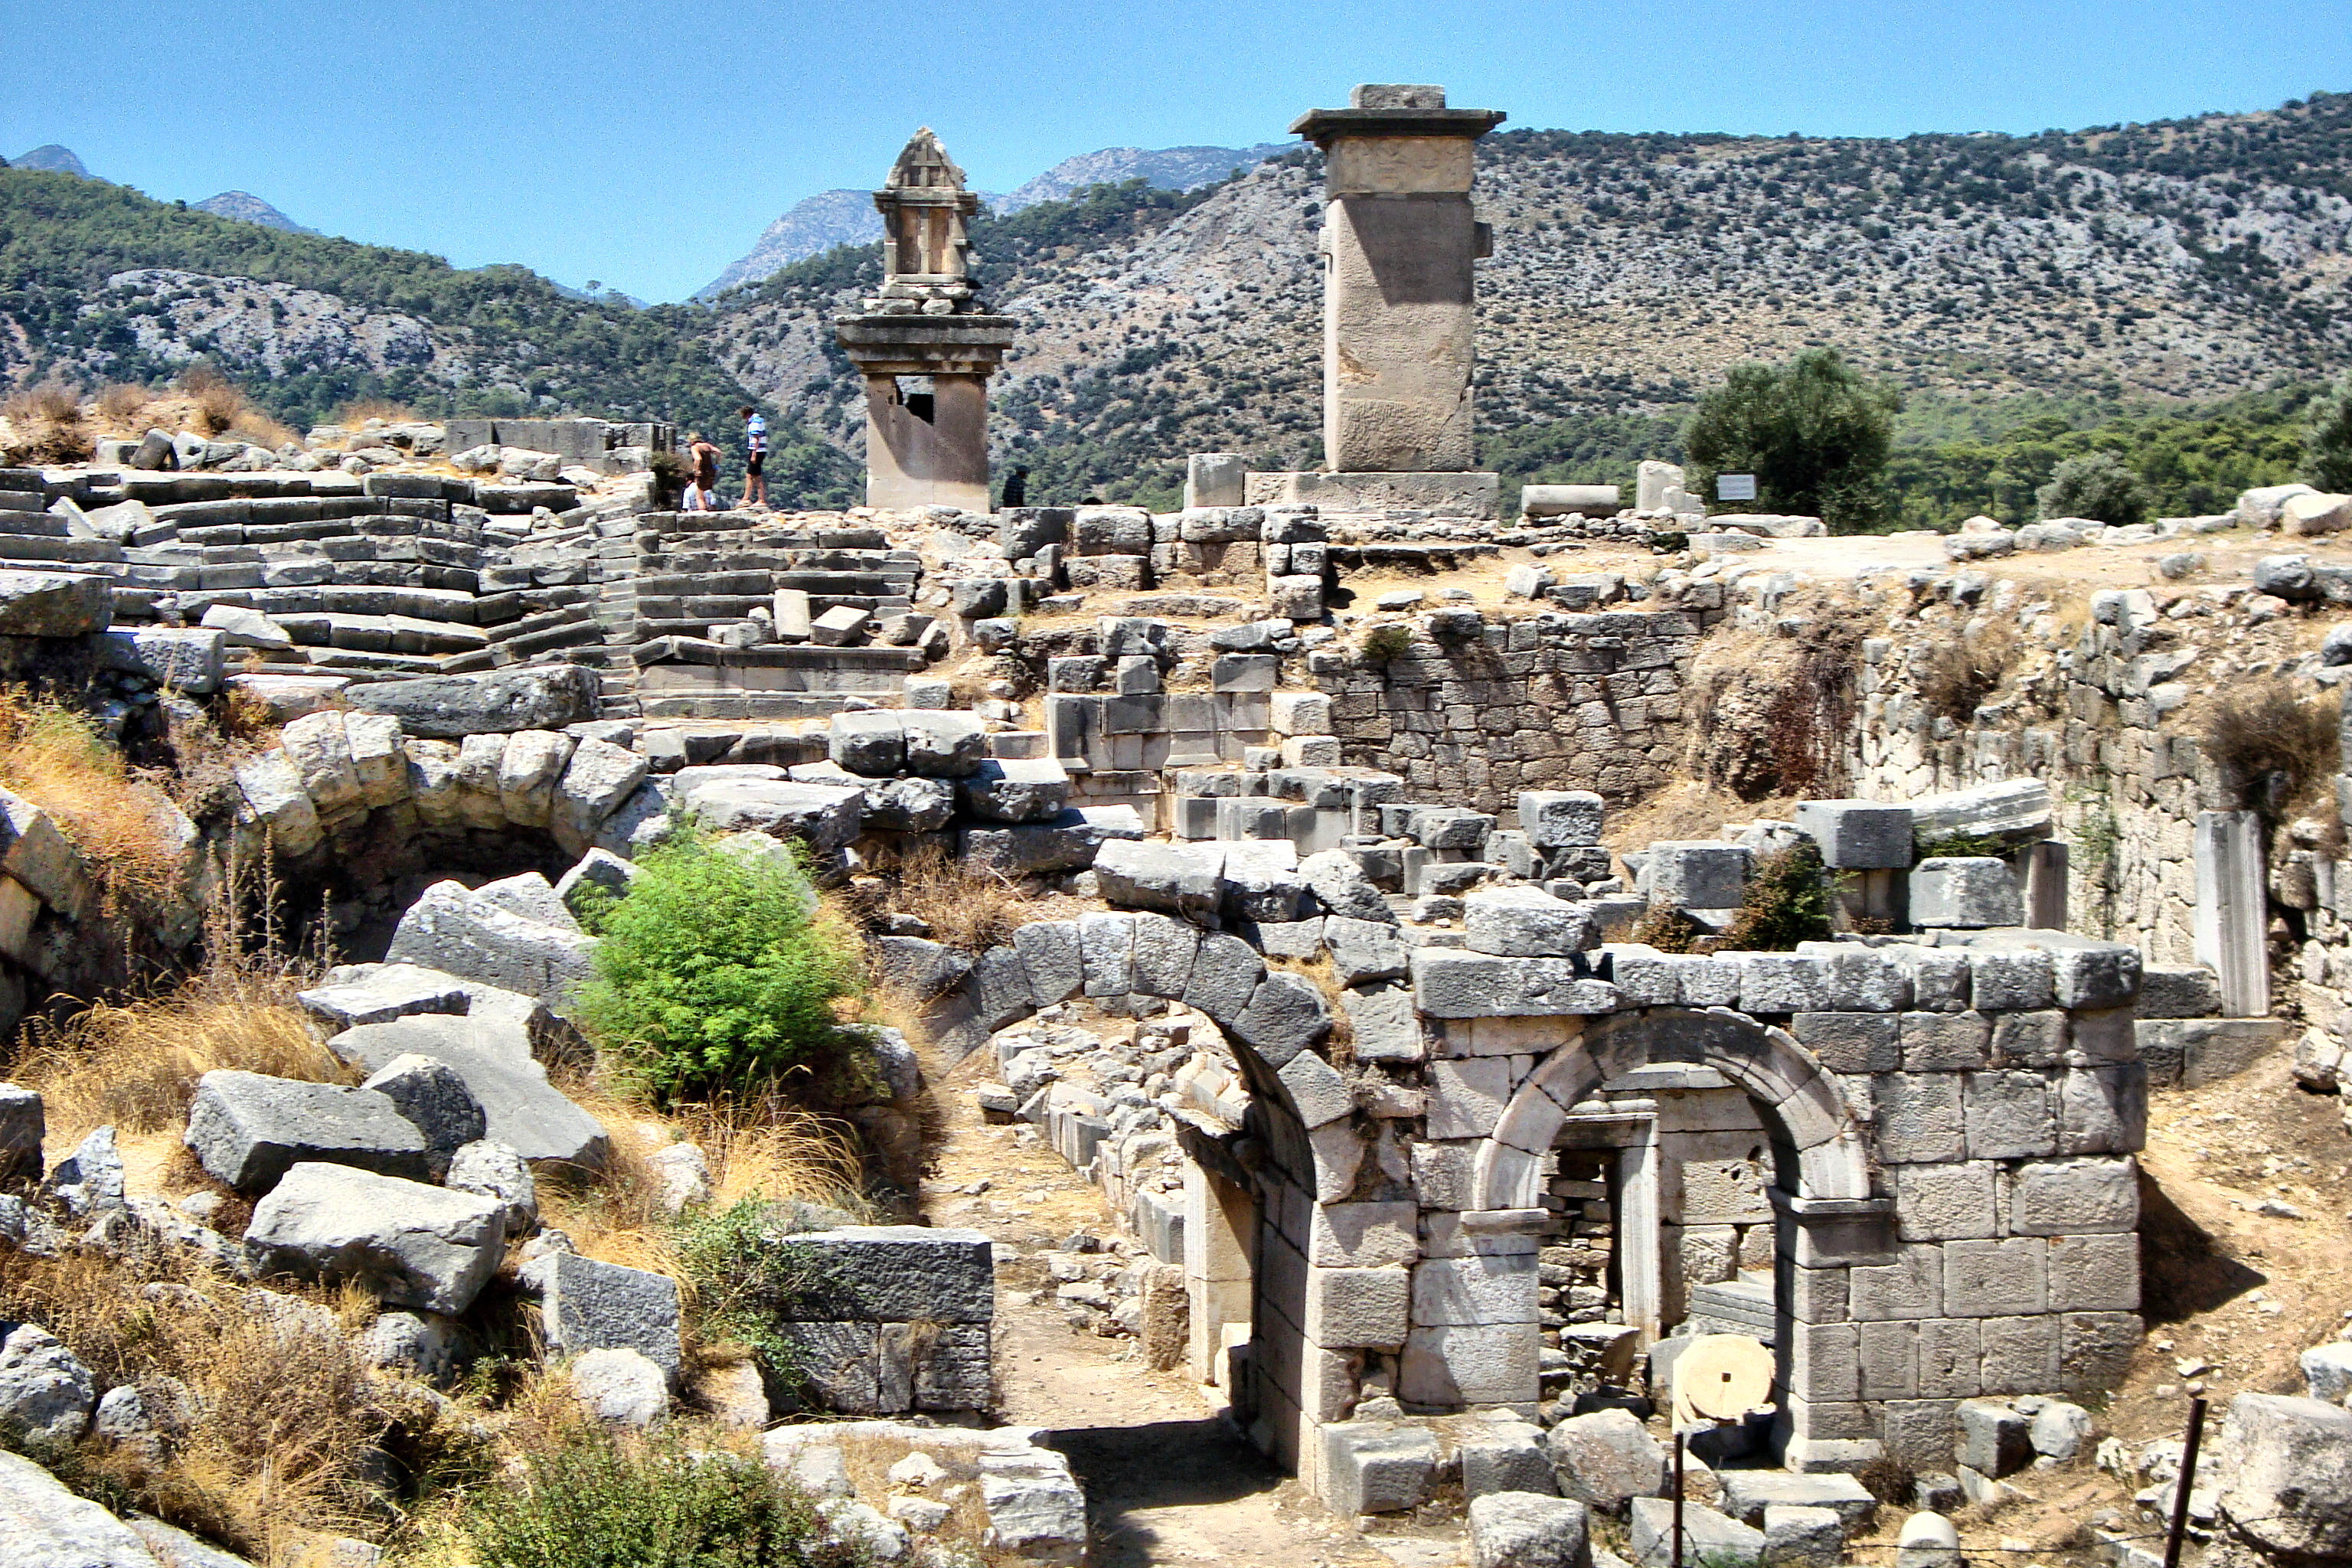 File:XANTHOS-TURKEY - panoramio.jpg - Wikimedia Commons